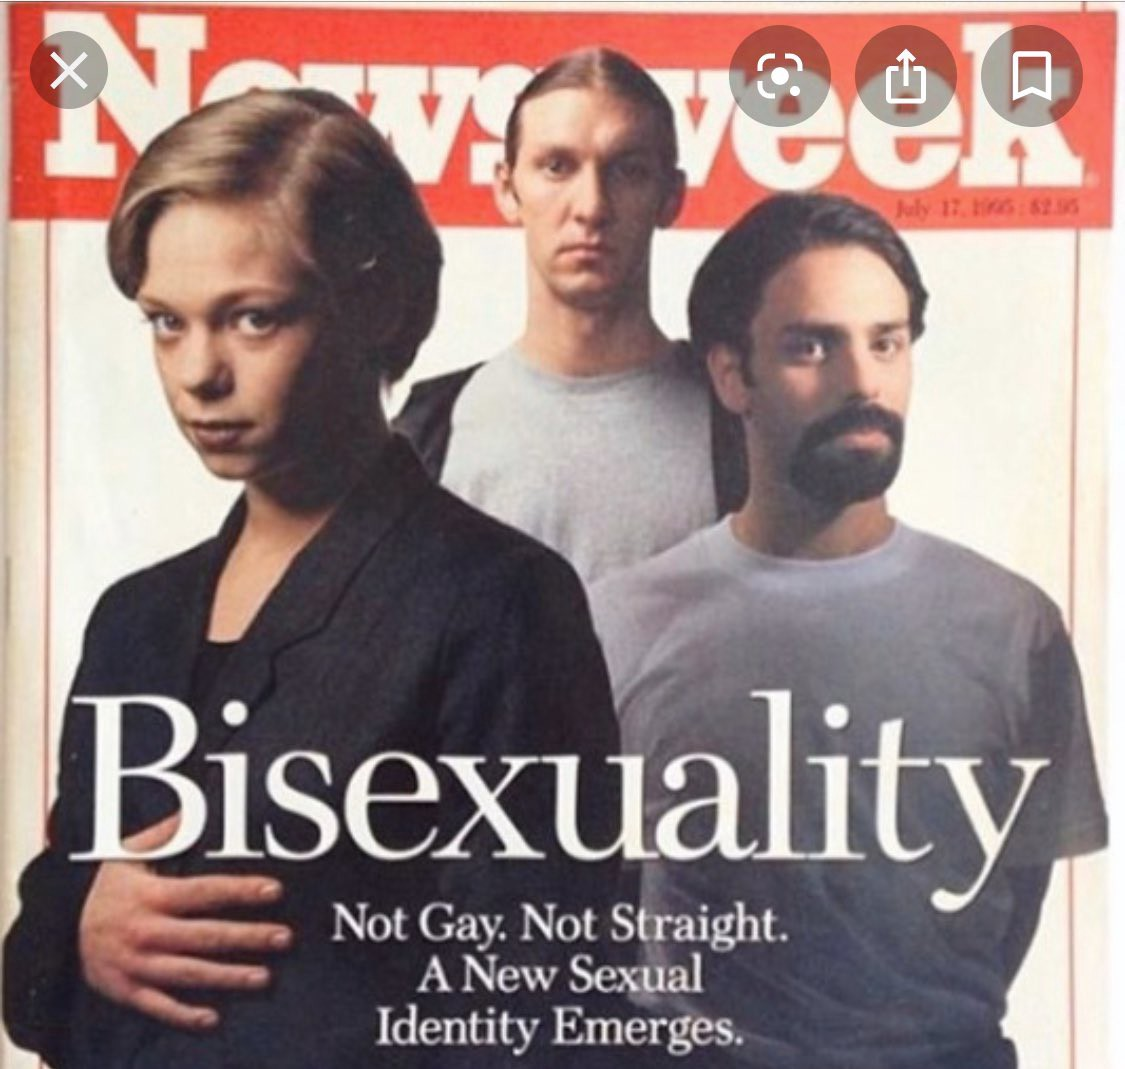 """Newsweek cover from July 17, 1995 stating """"Bisexuality: Not Gay. Not Straight. A New Sexual Identity Emerges."""""""